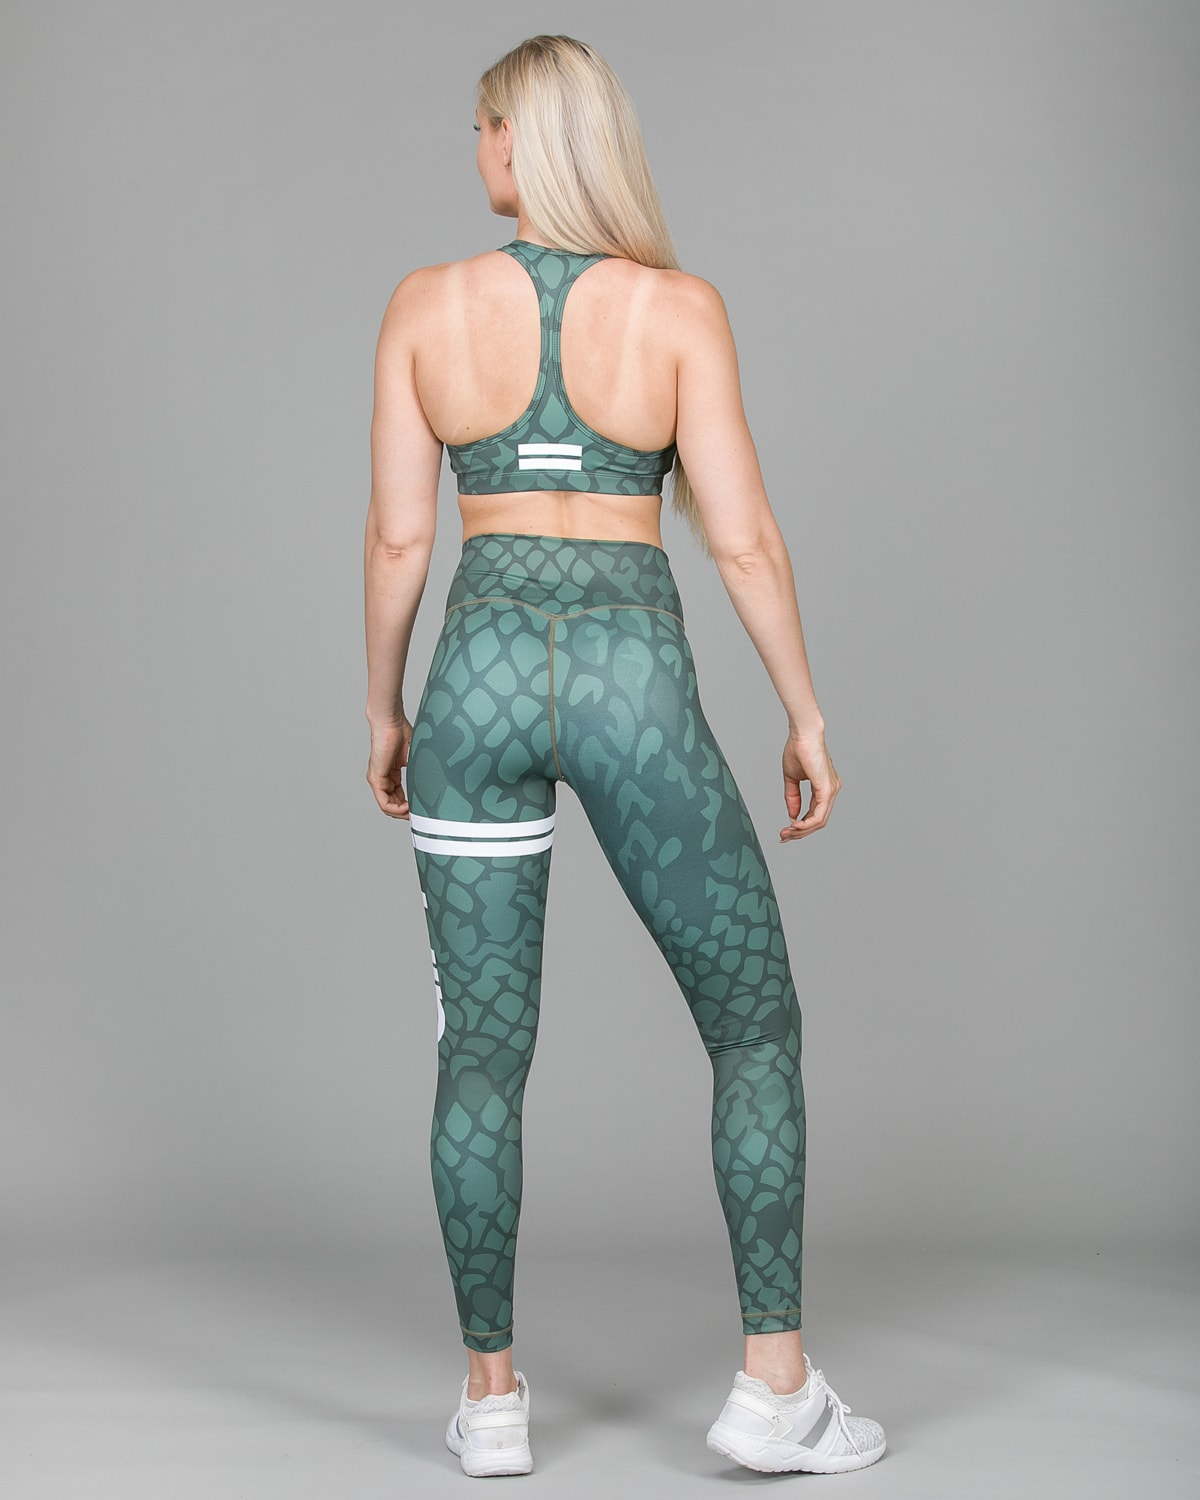 Aim'n Anaconda Tights 18020005 and Bra 18030002 c